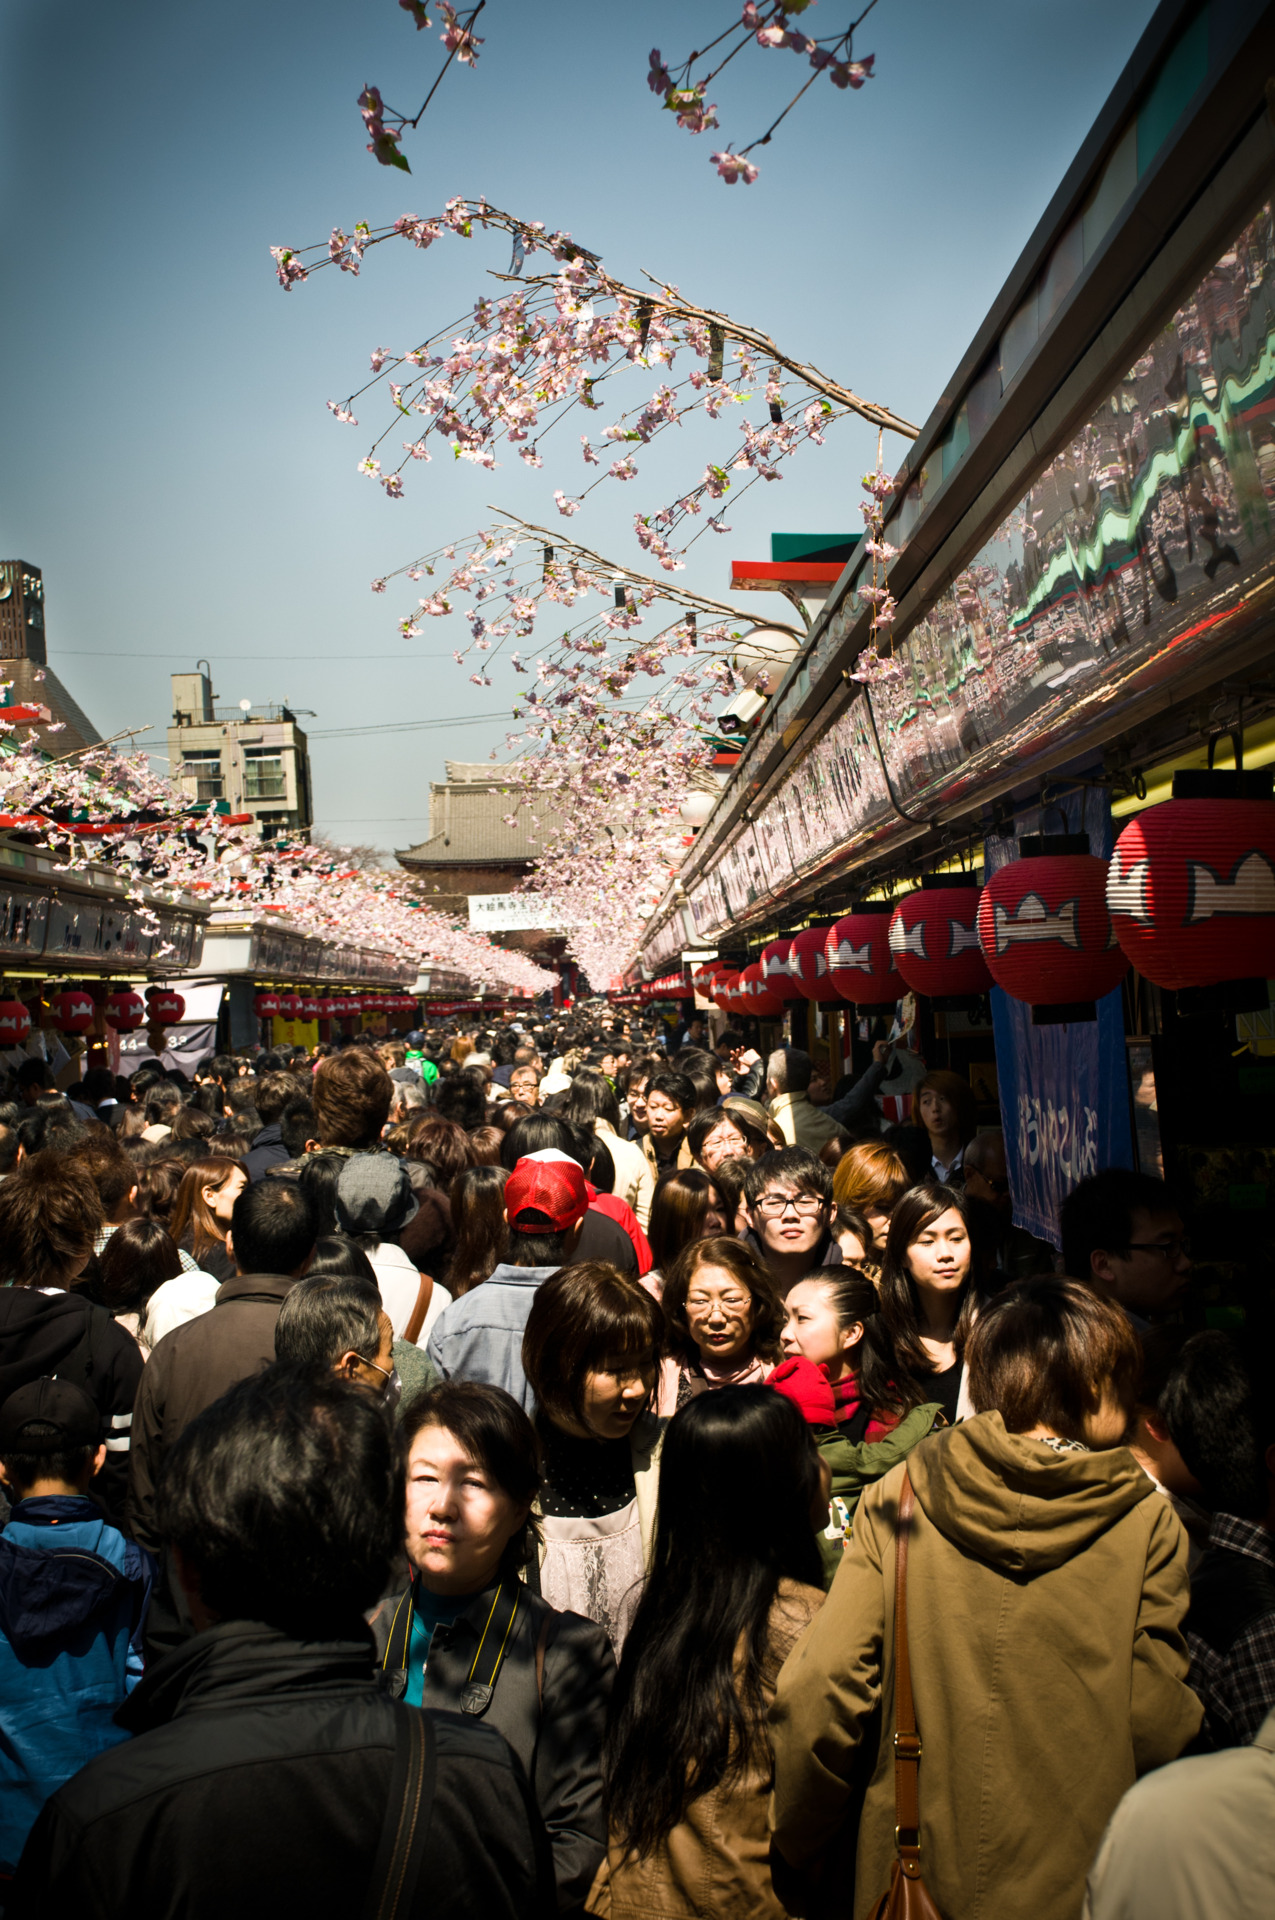 Asakusa Market and Sensoji Temple